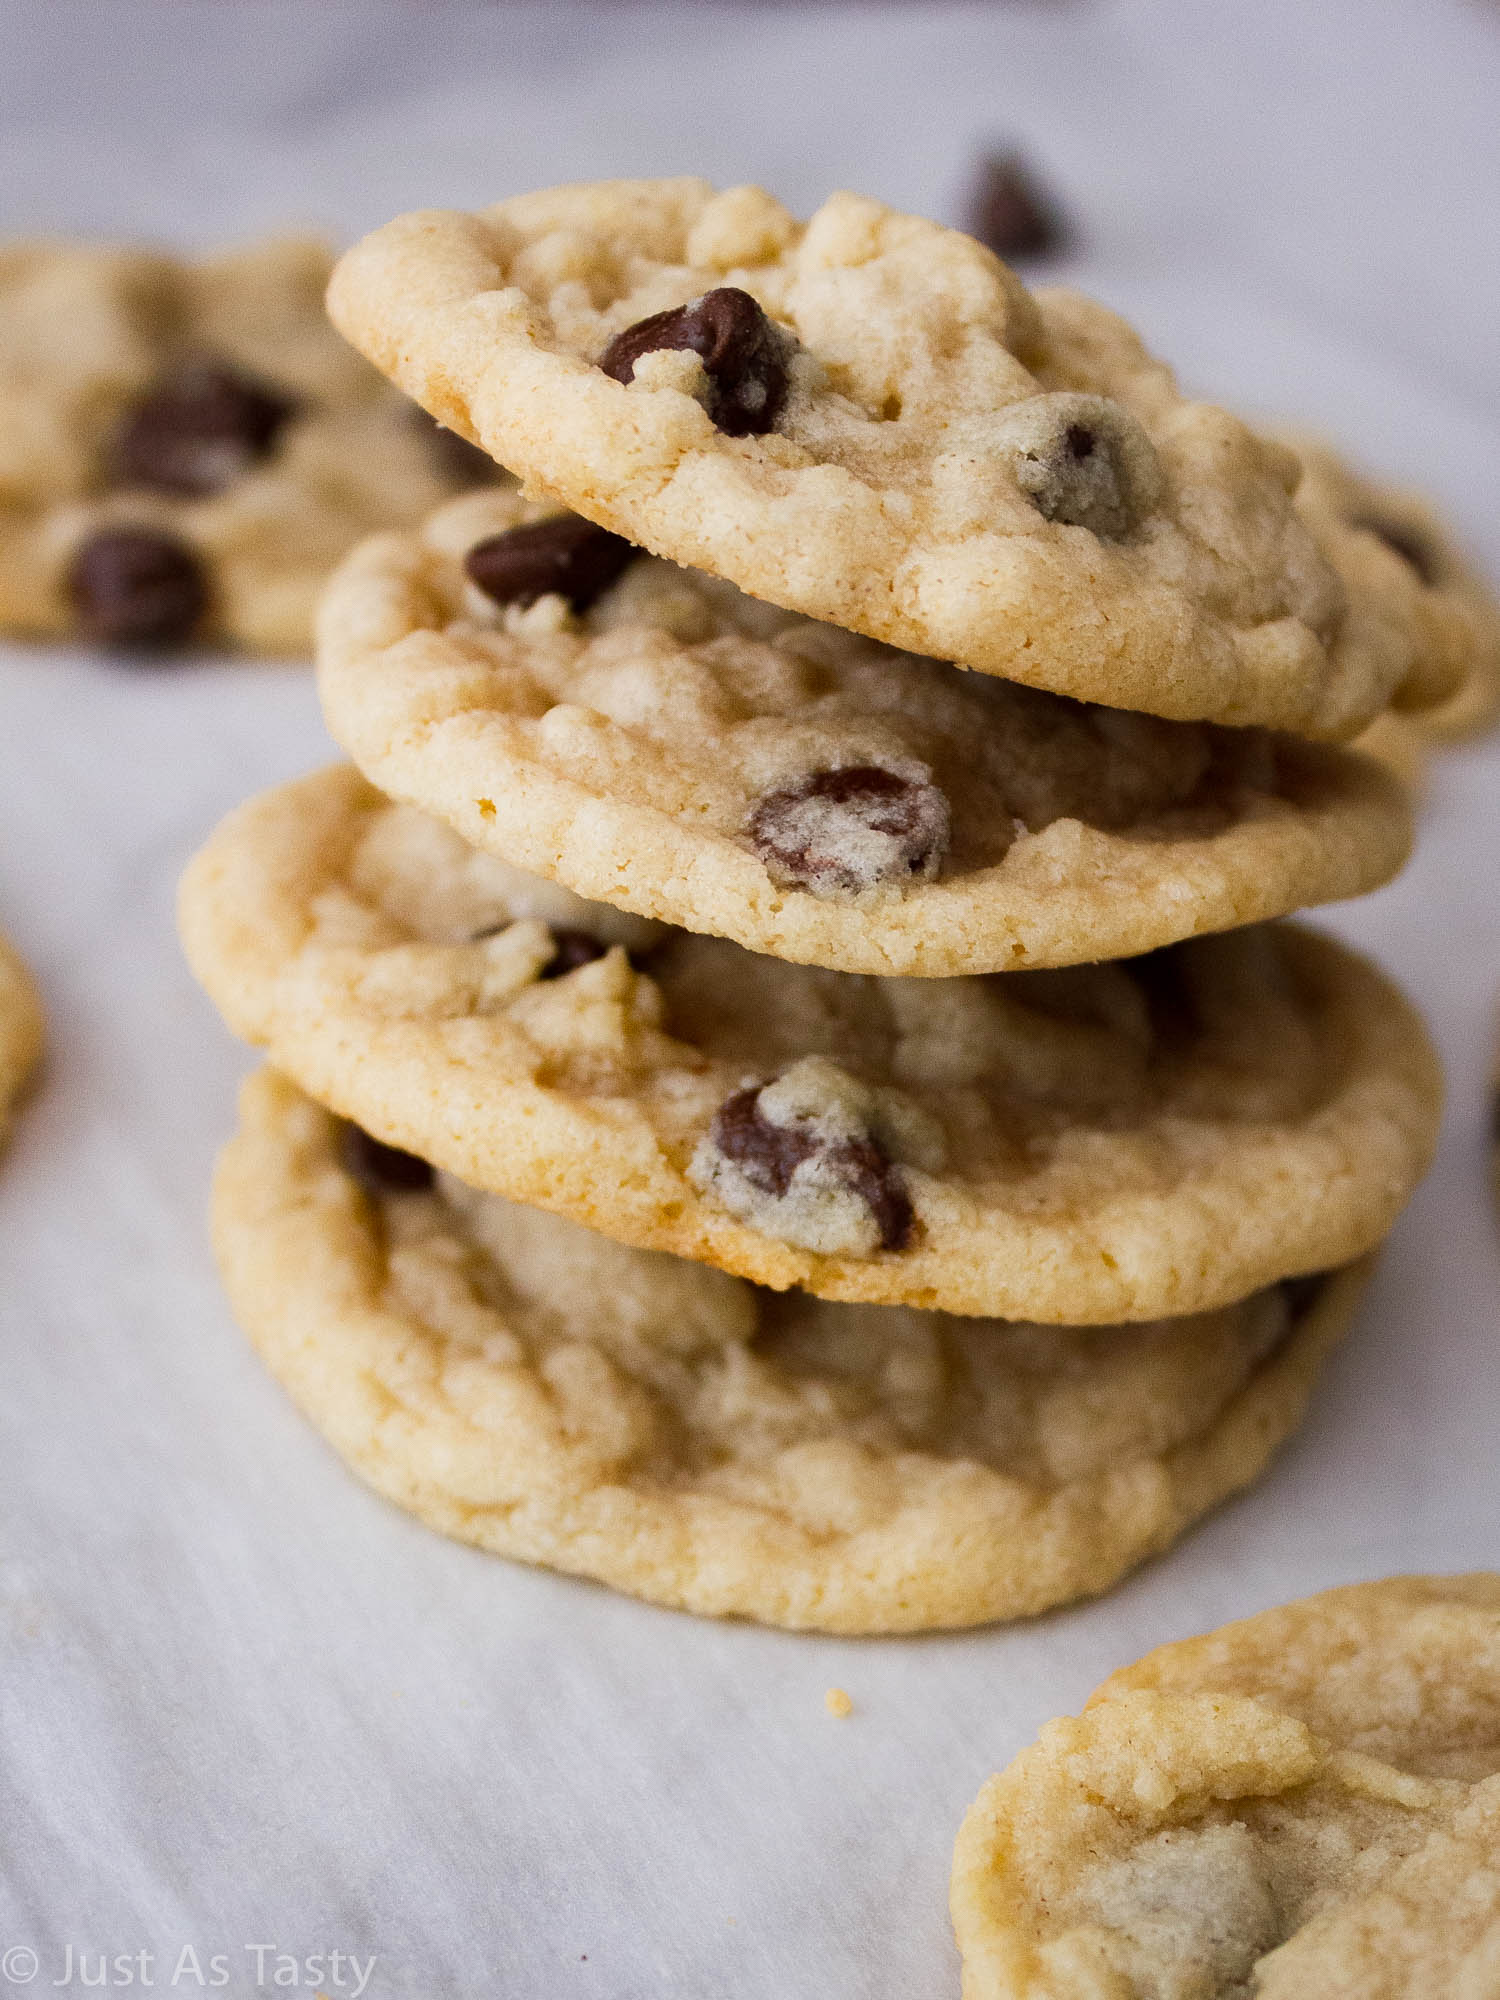 Stack of chocolate chip cookies on parchment paper.